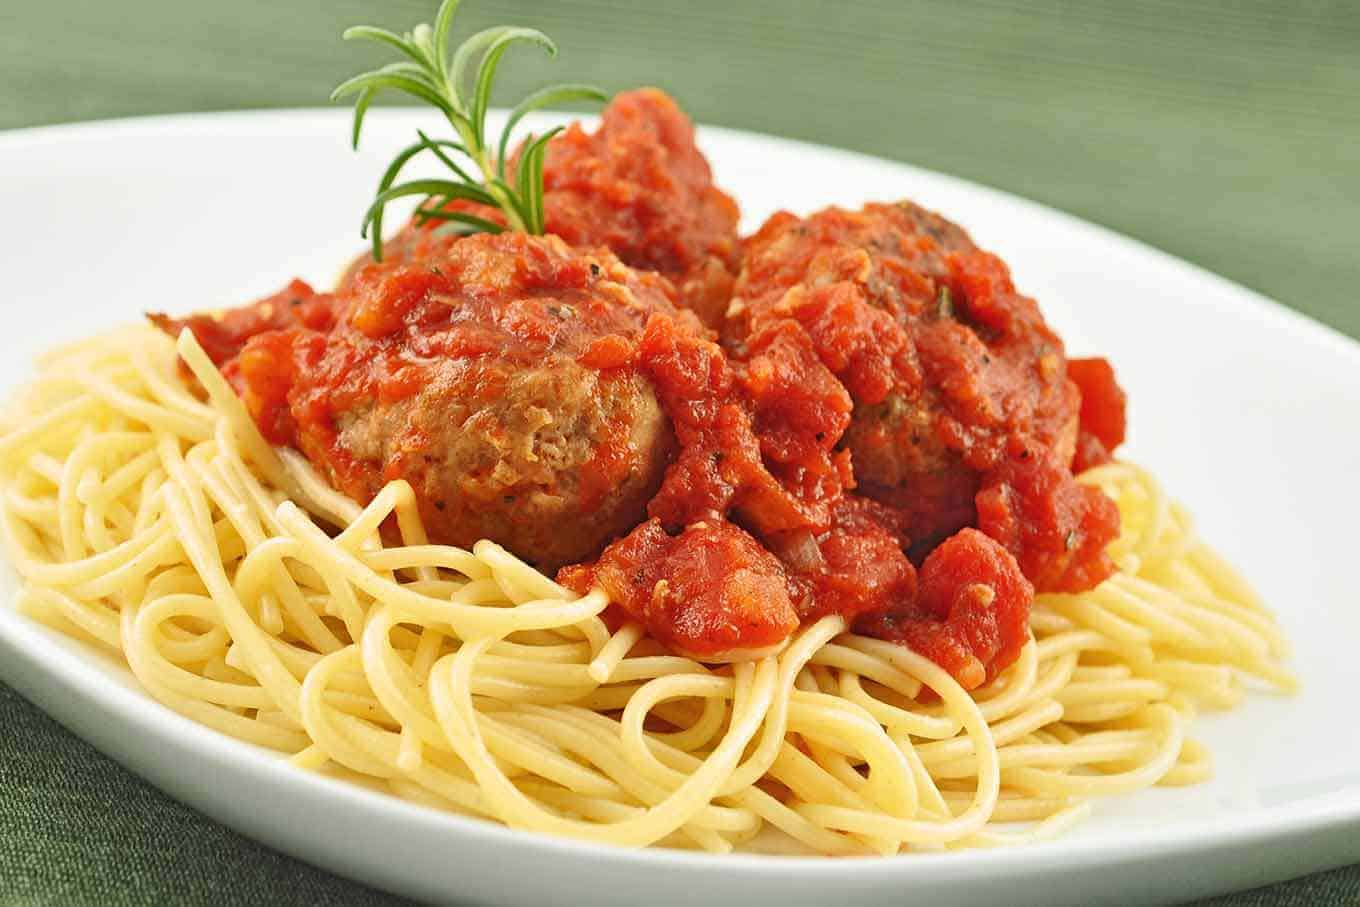 Tomato Sauce For Fish Cakes